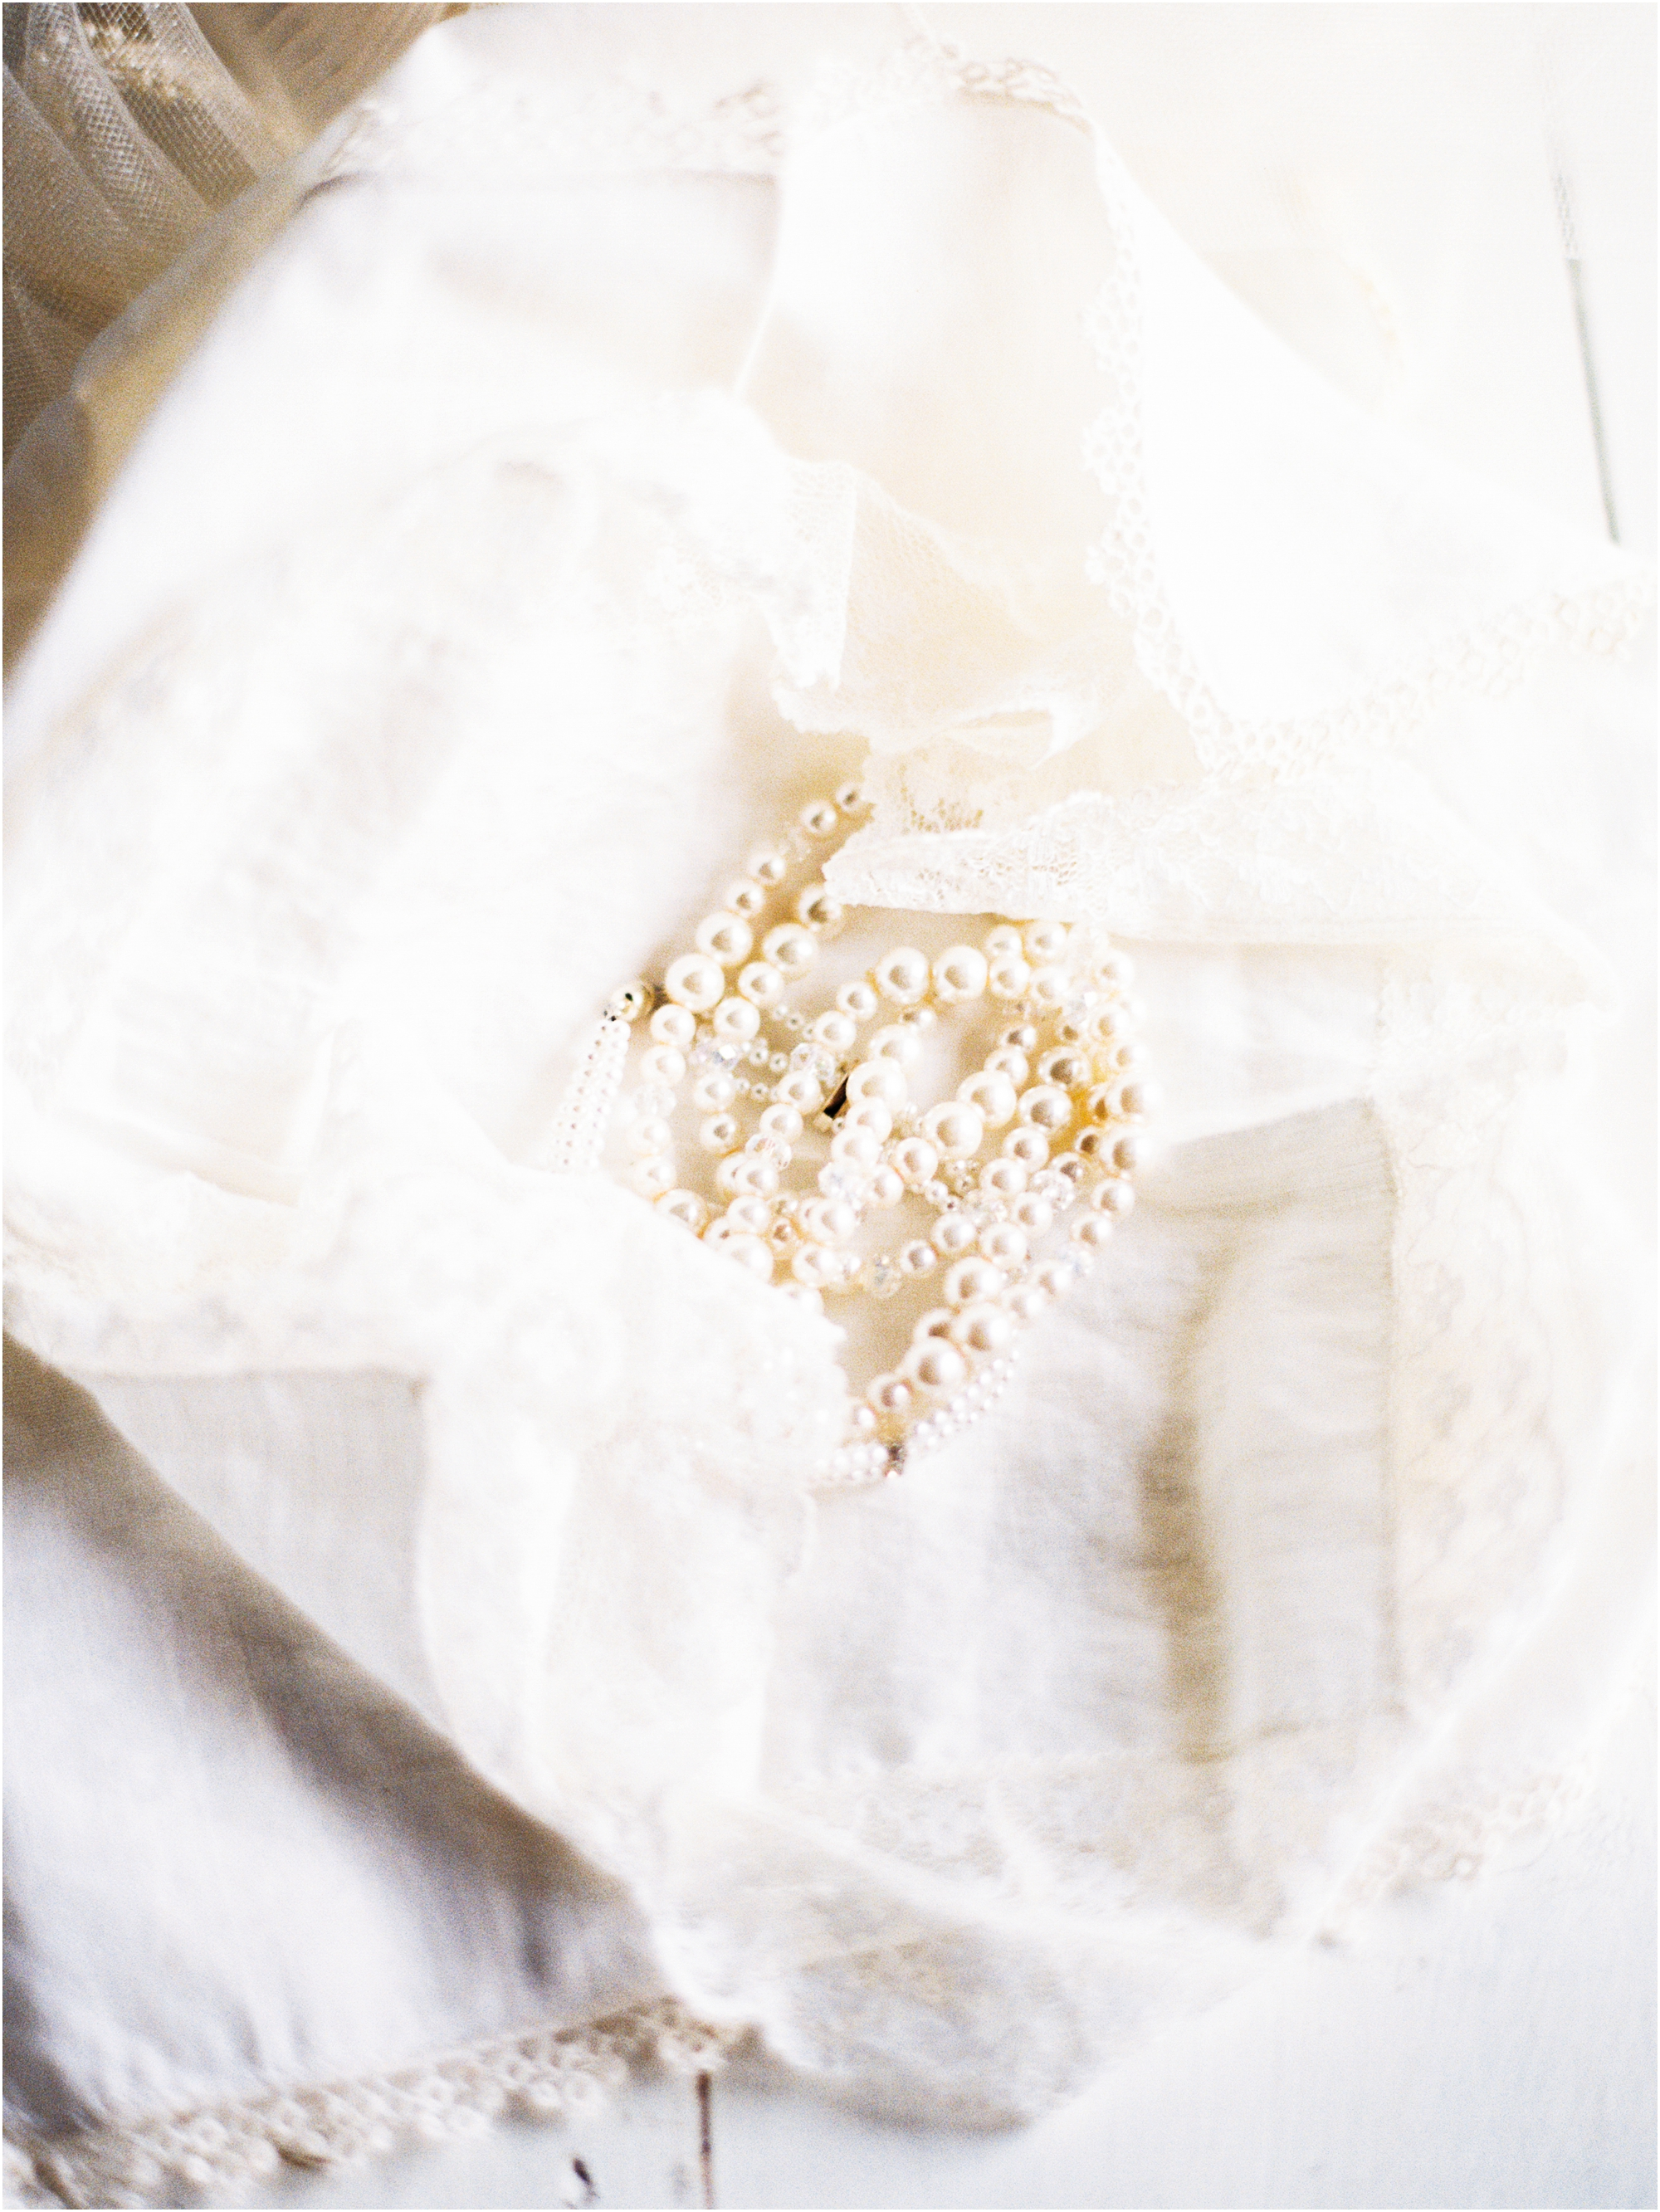 Pearl bracelets for a southern wedding by Jordan Brittley Photography (www.jordanbrittley.com)